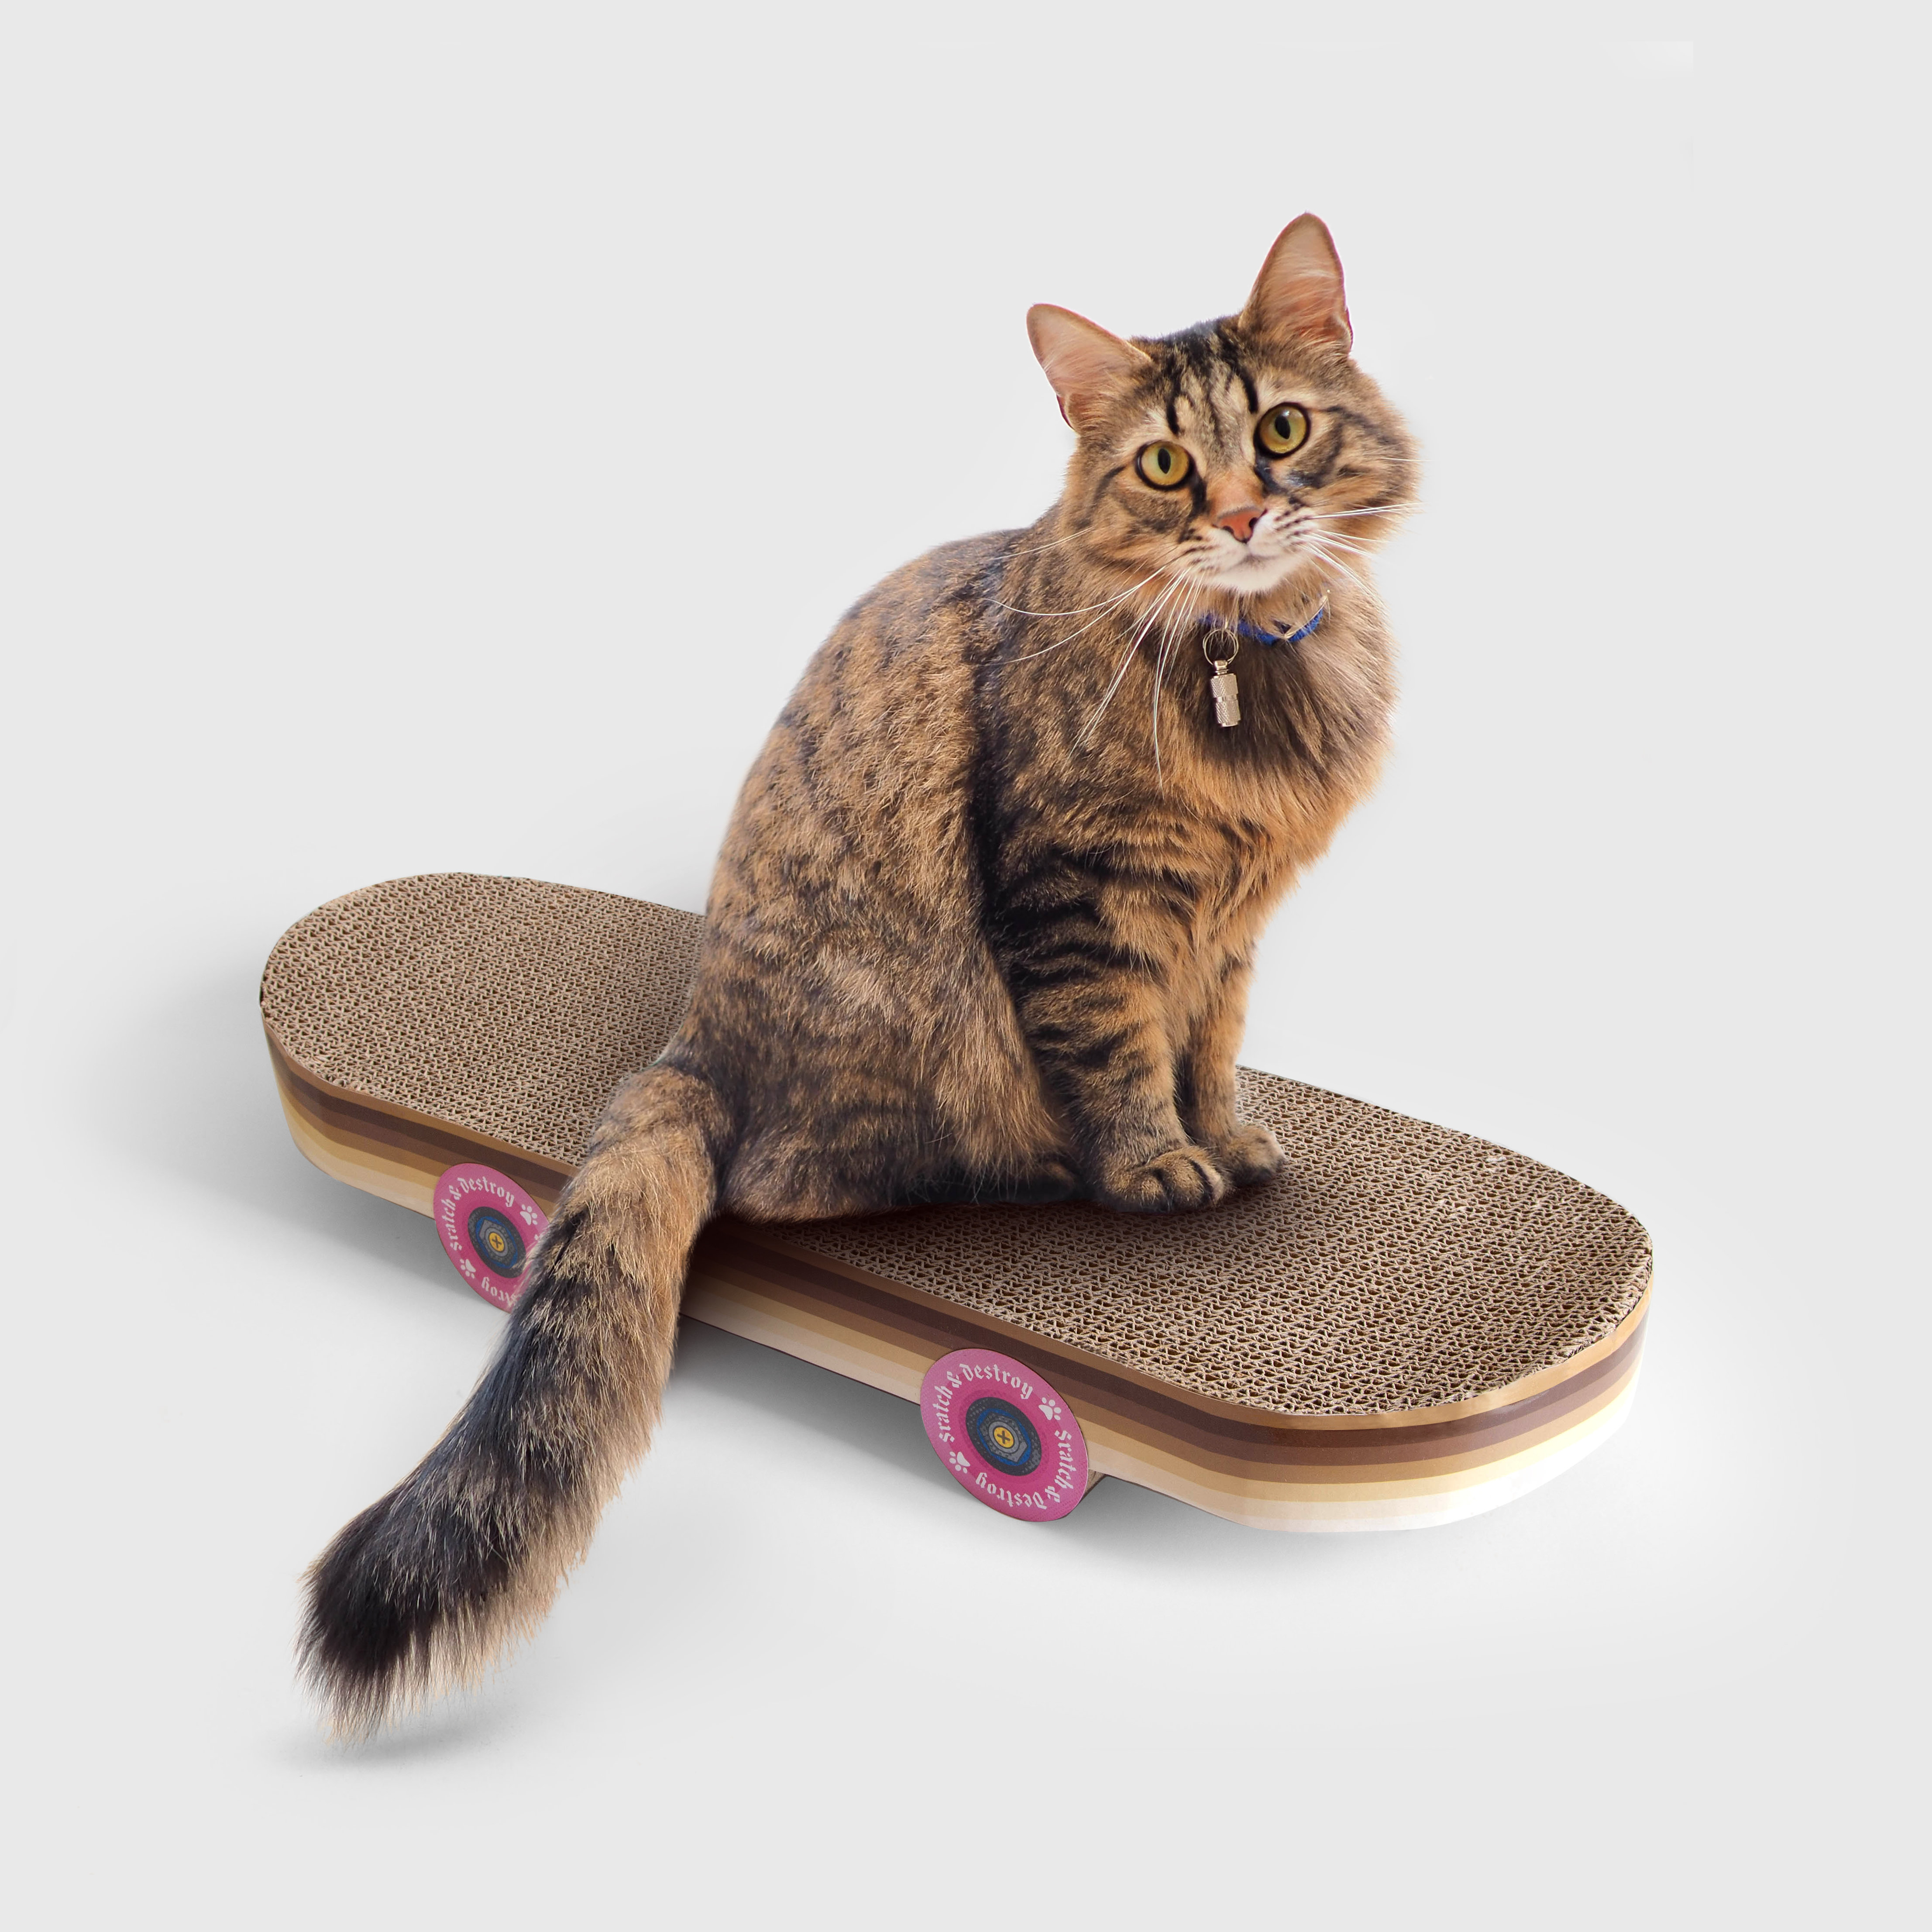 Cardboard scratching skateboard for cats